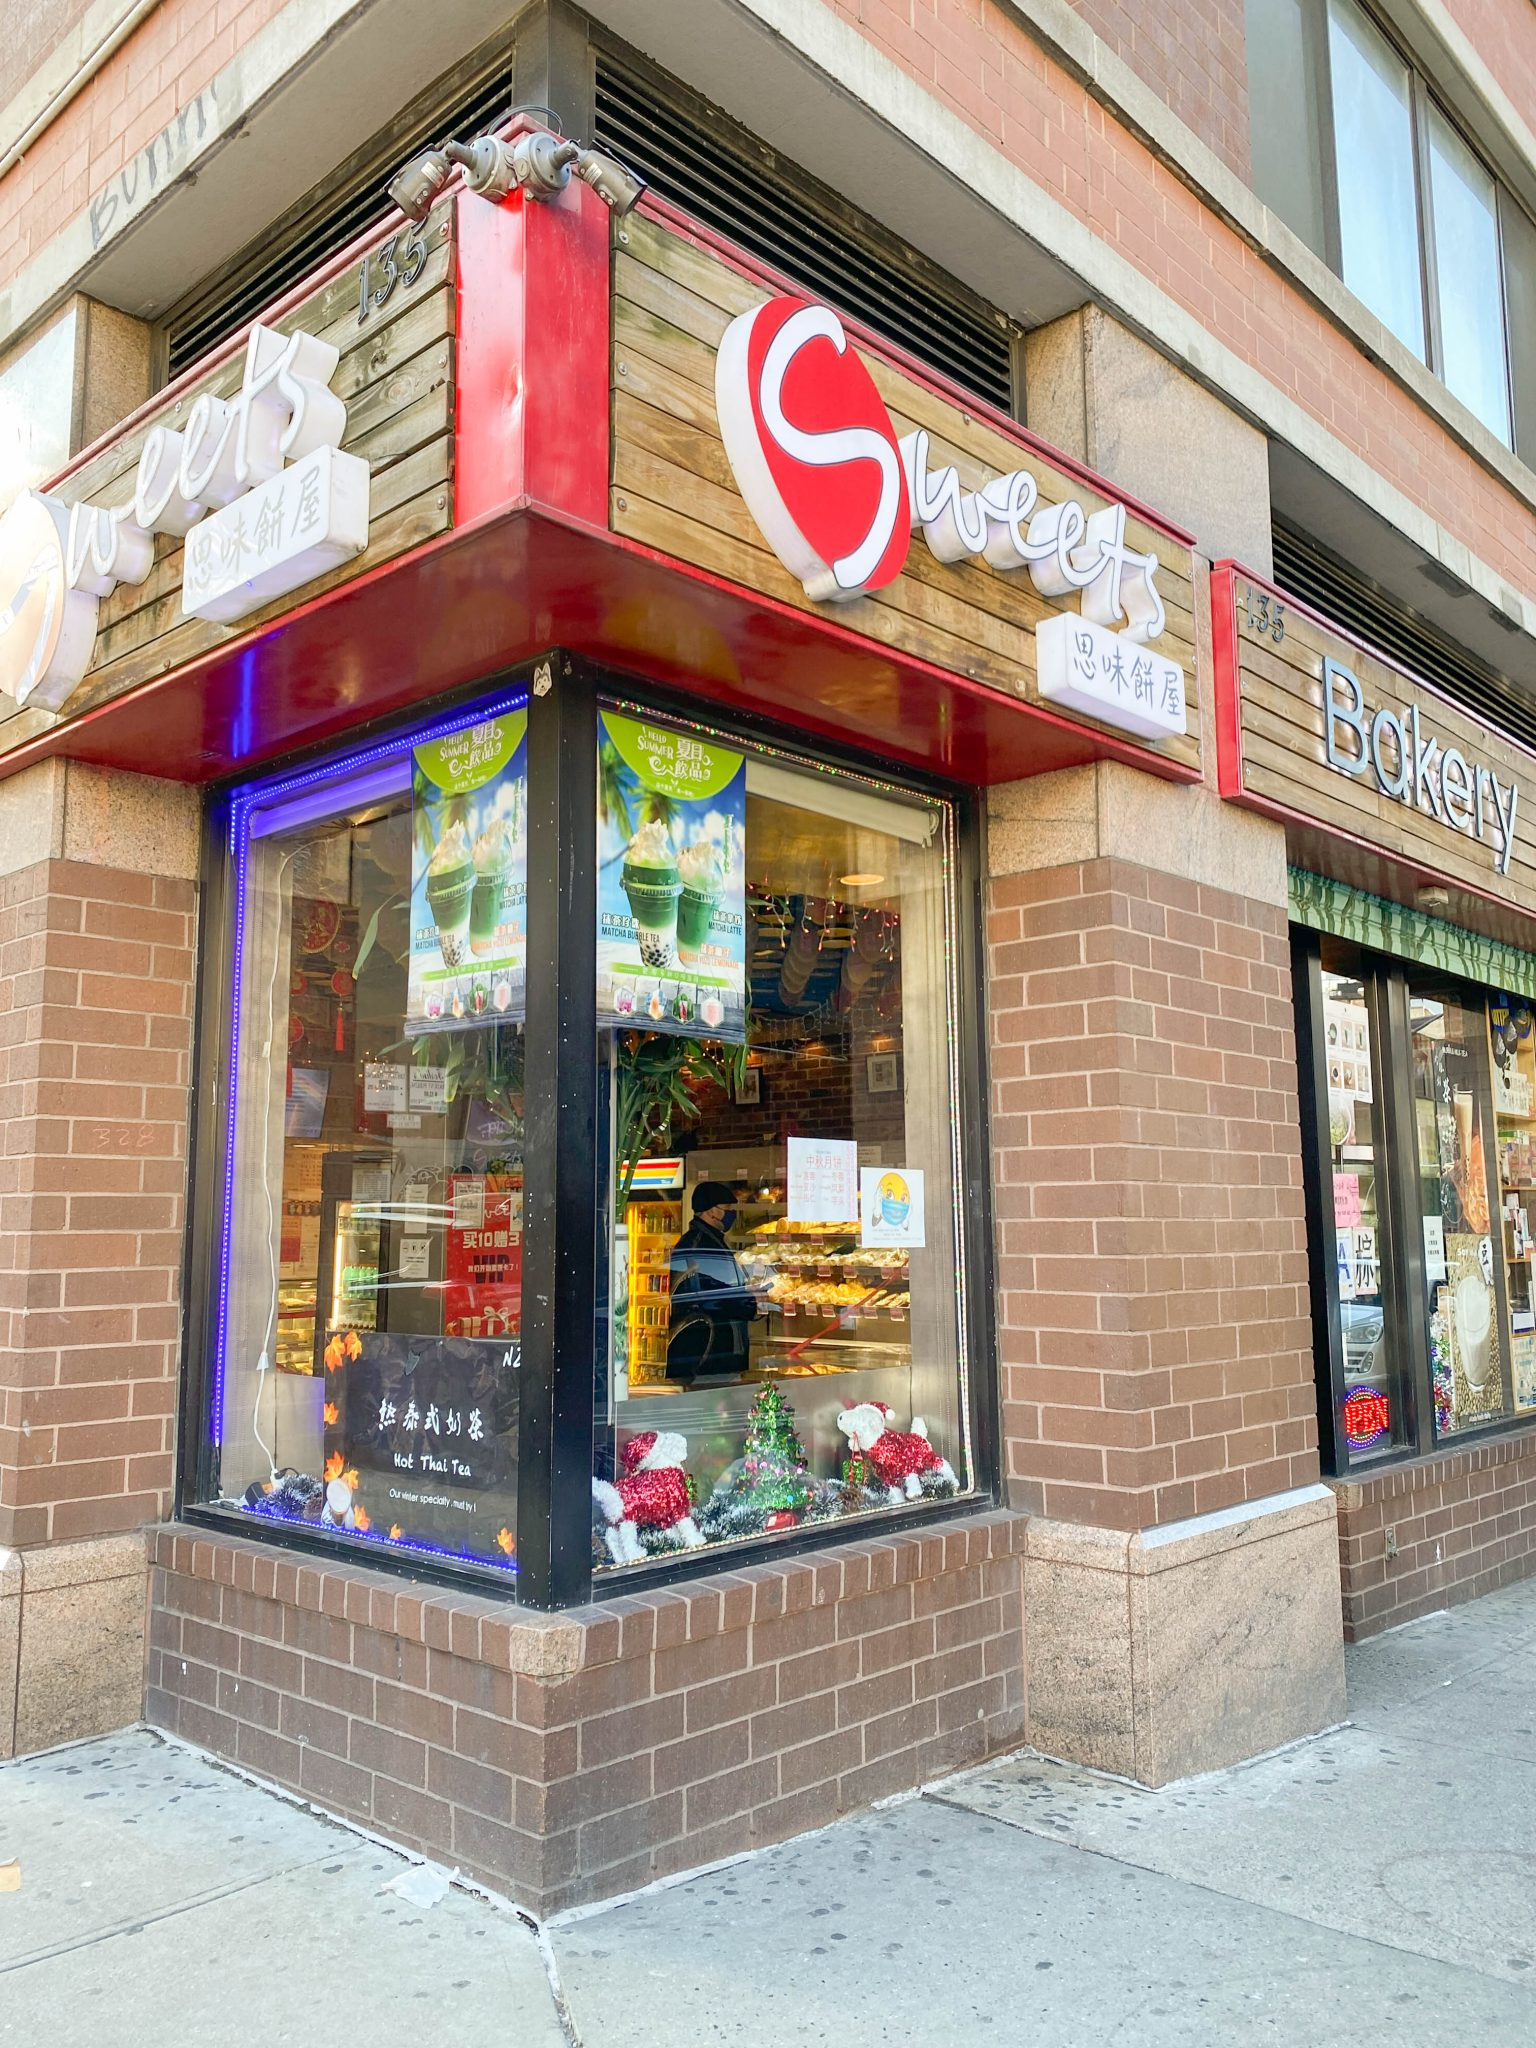 4 Small Businesses to Support in Chinatown NYC by Basically A Mess (image of Sweets Bakery in Chinatown New York City)